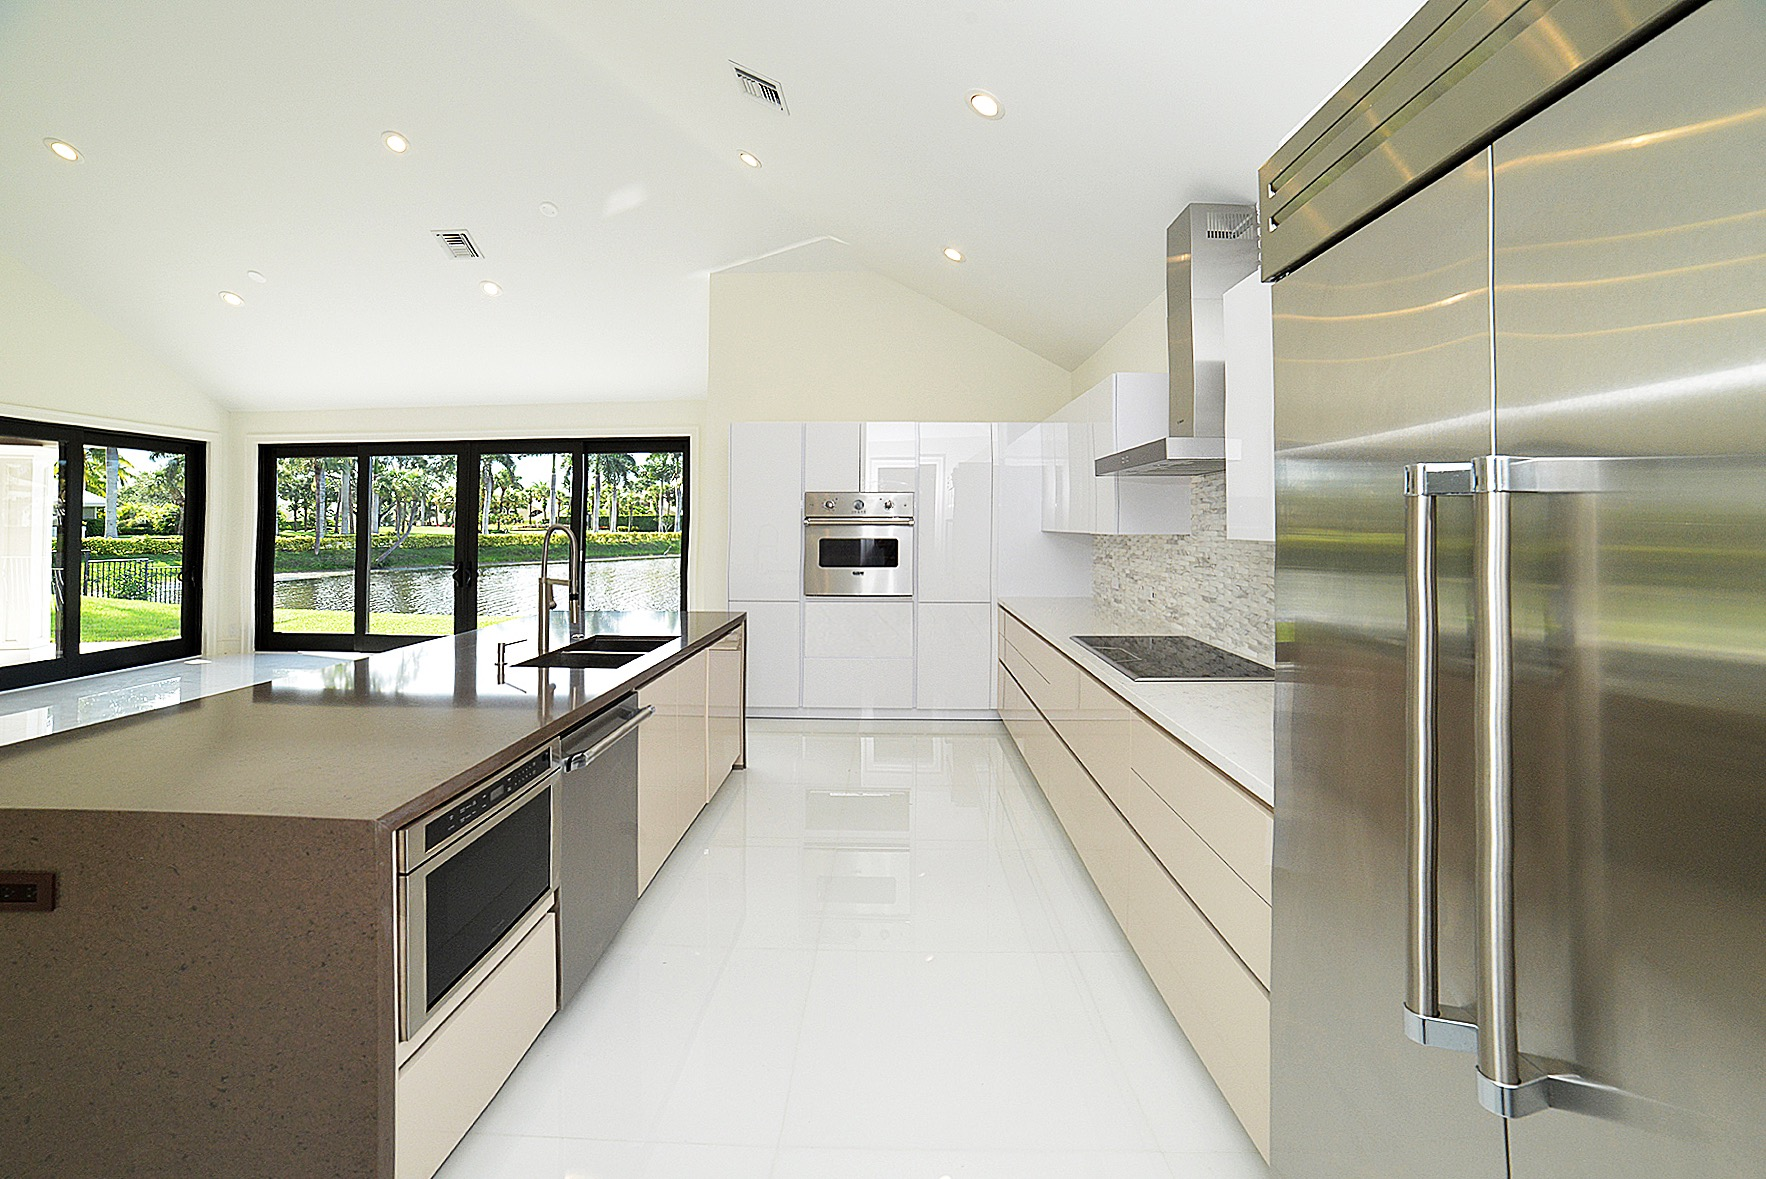 mag real estate & development construction general contractor builder renovation south florida boca raton new custom luxury home for sale interior design st. andrews country club 7026 ayrshire lane 14.jpg